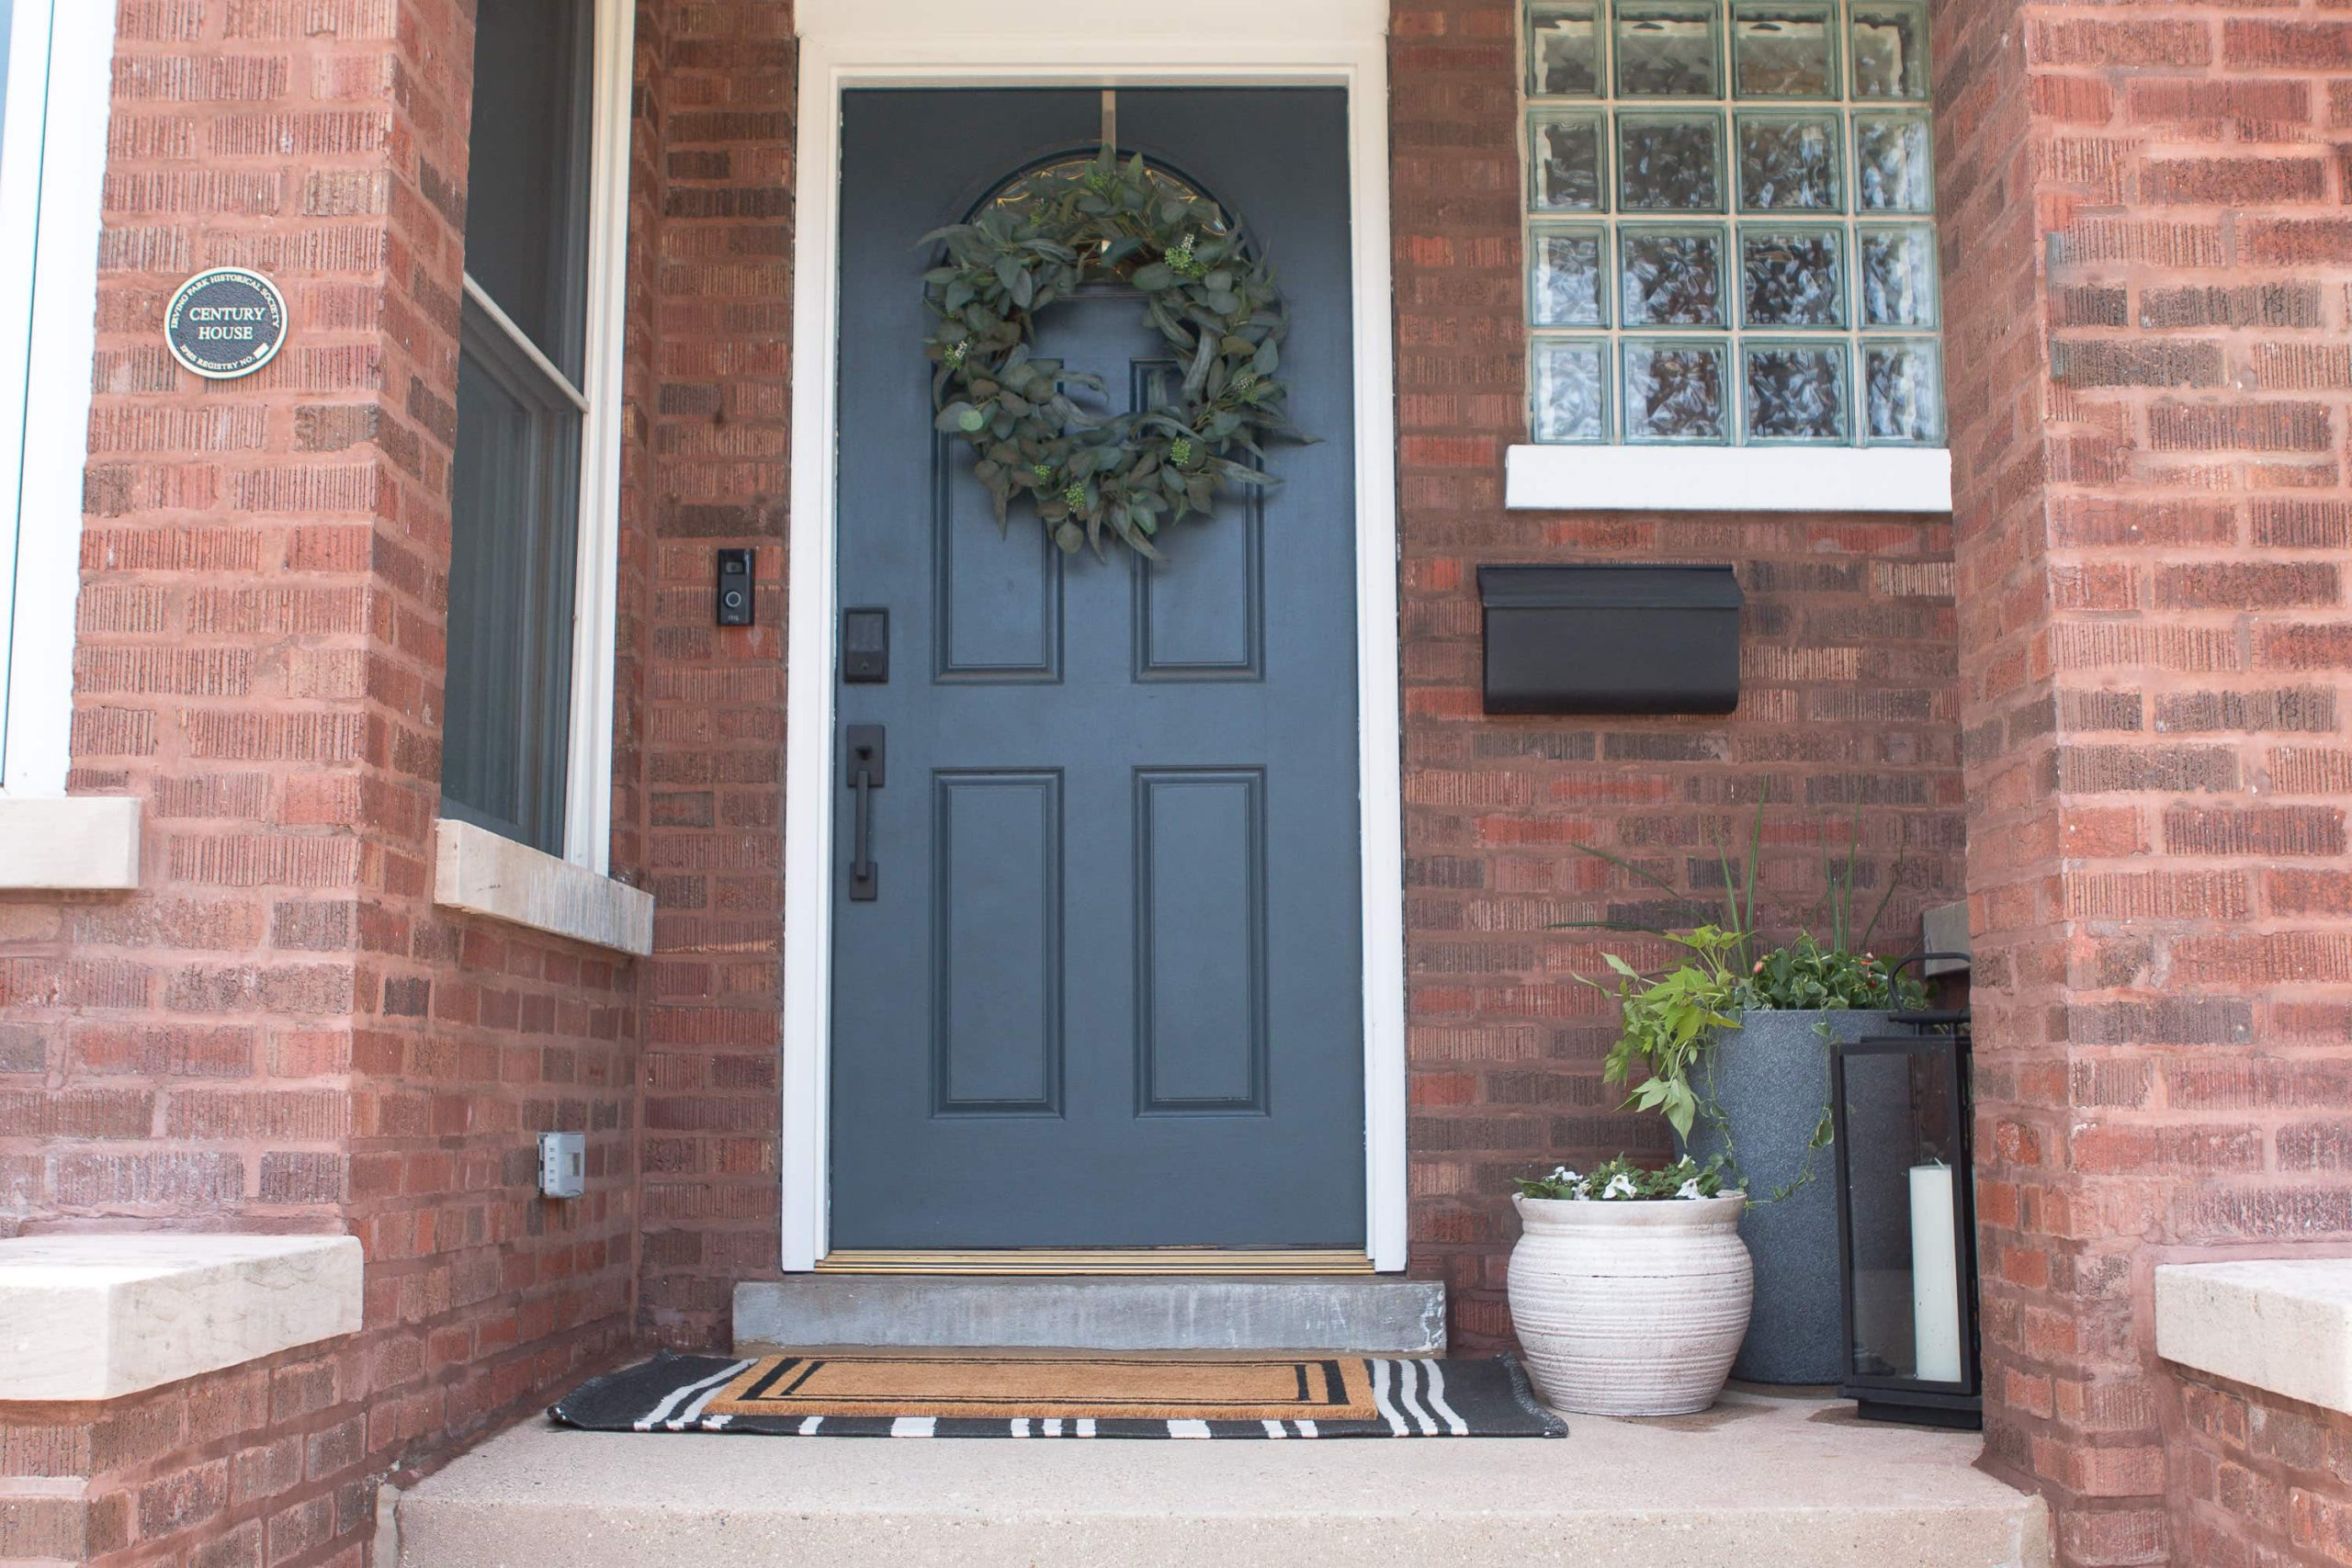 Our front porch for summer